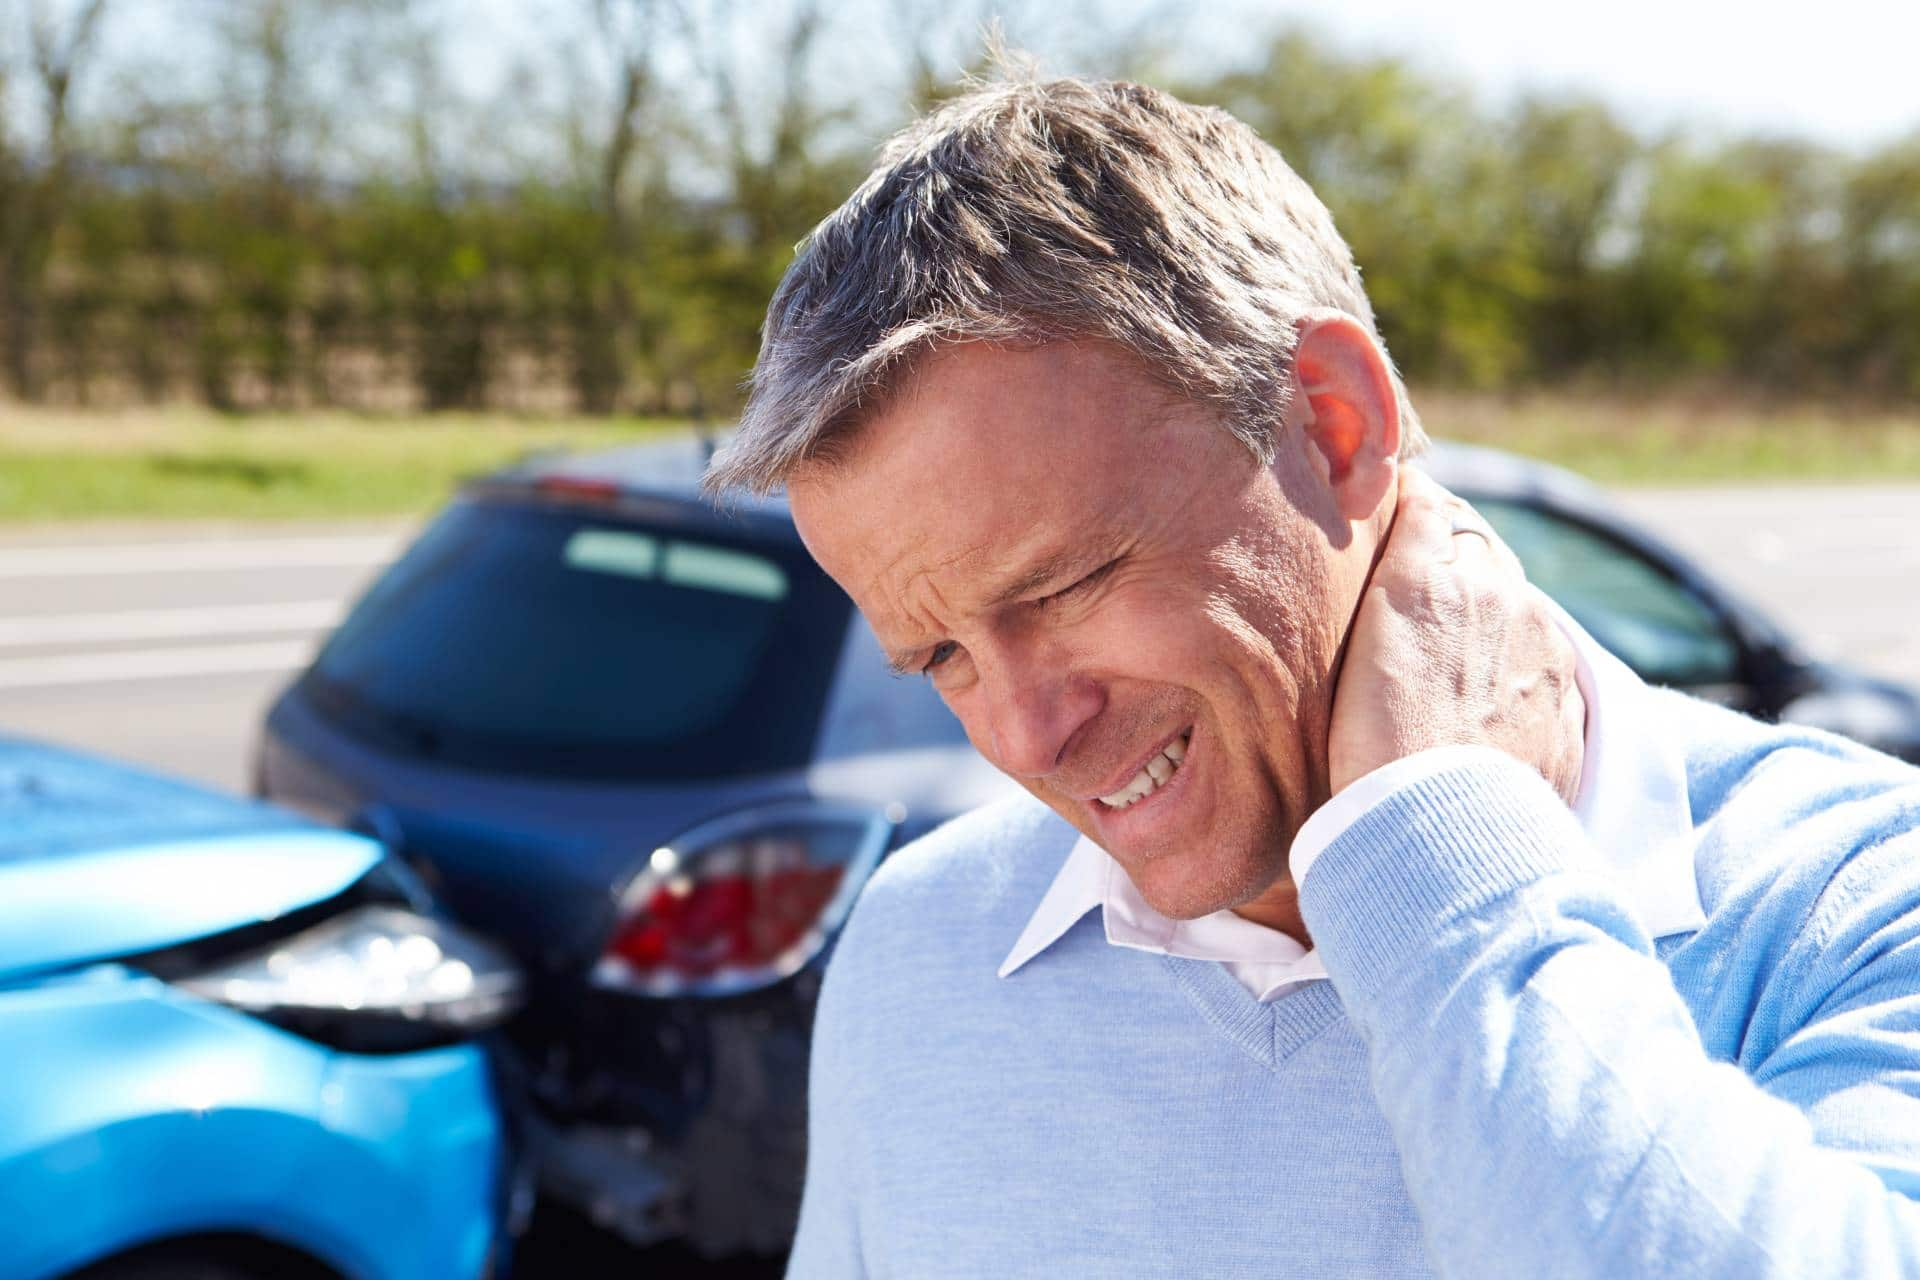 Hurt in a car accident? Schedule a free consultation with our personal injury lawyers at the Angell Firm in Underwood Hills.